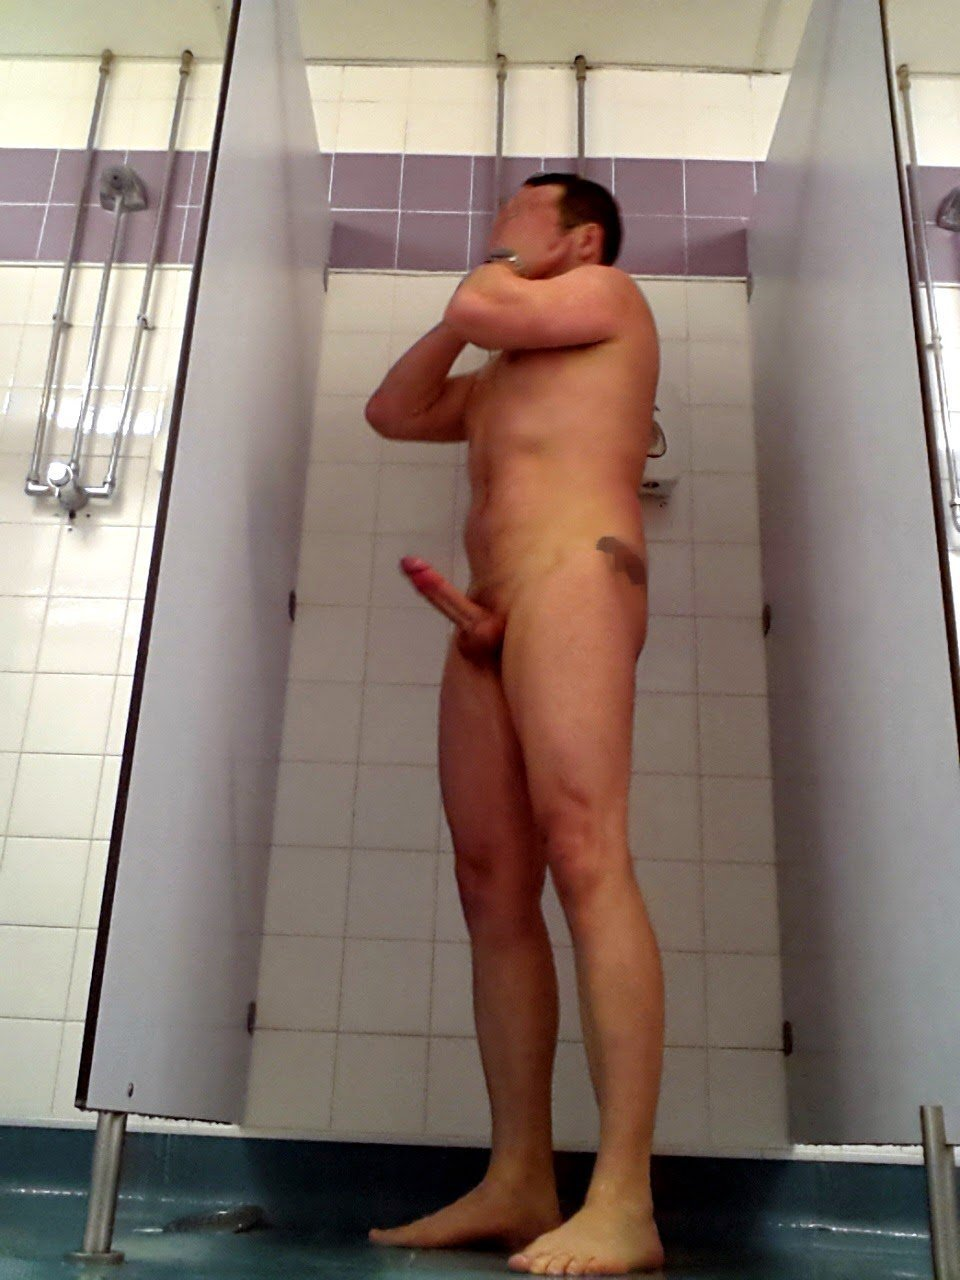 naked man shower hardon